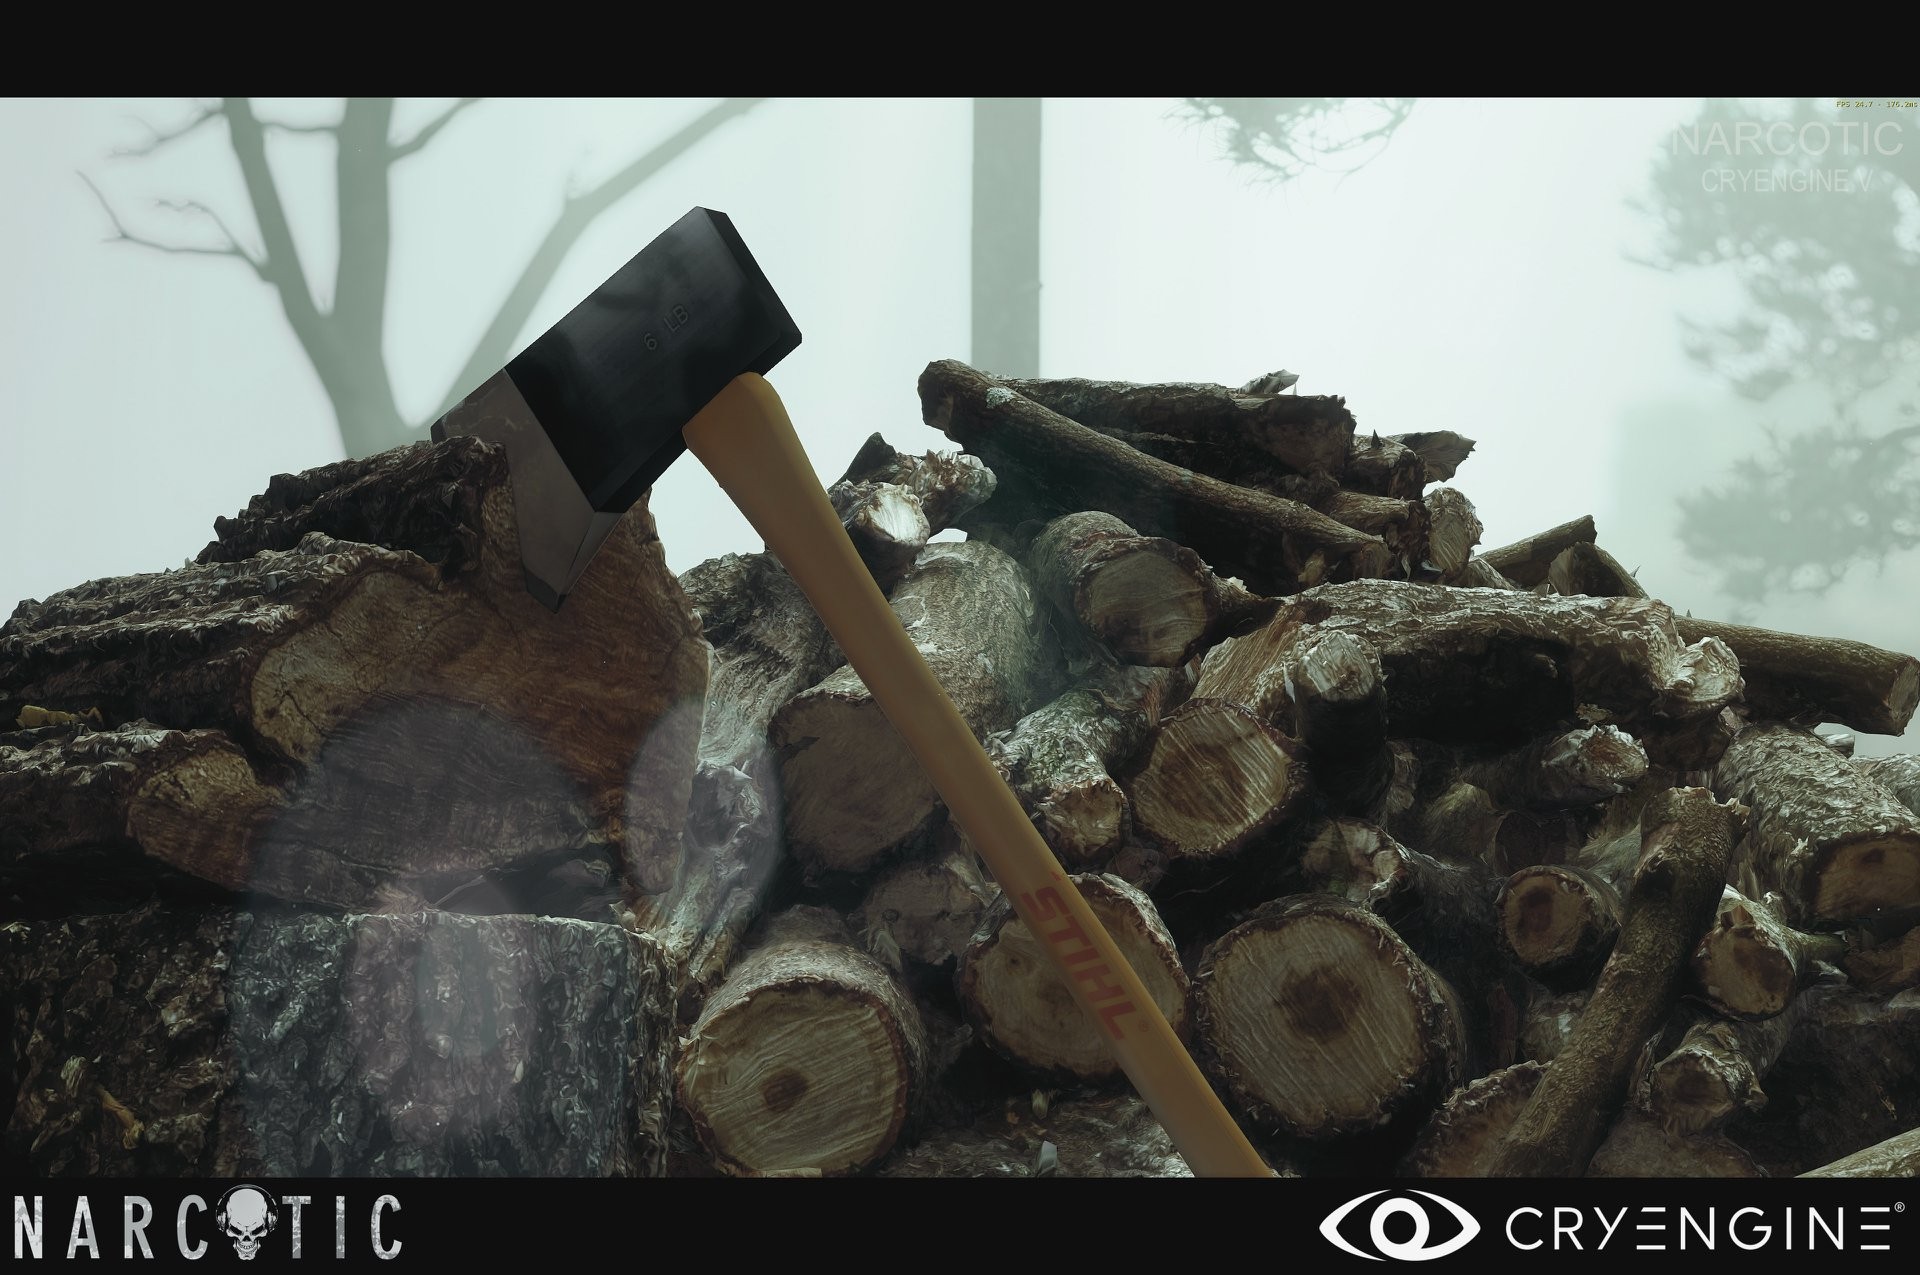 This CRYENGINE project has the best looking graphics EVER